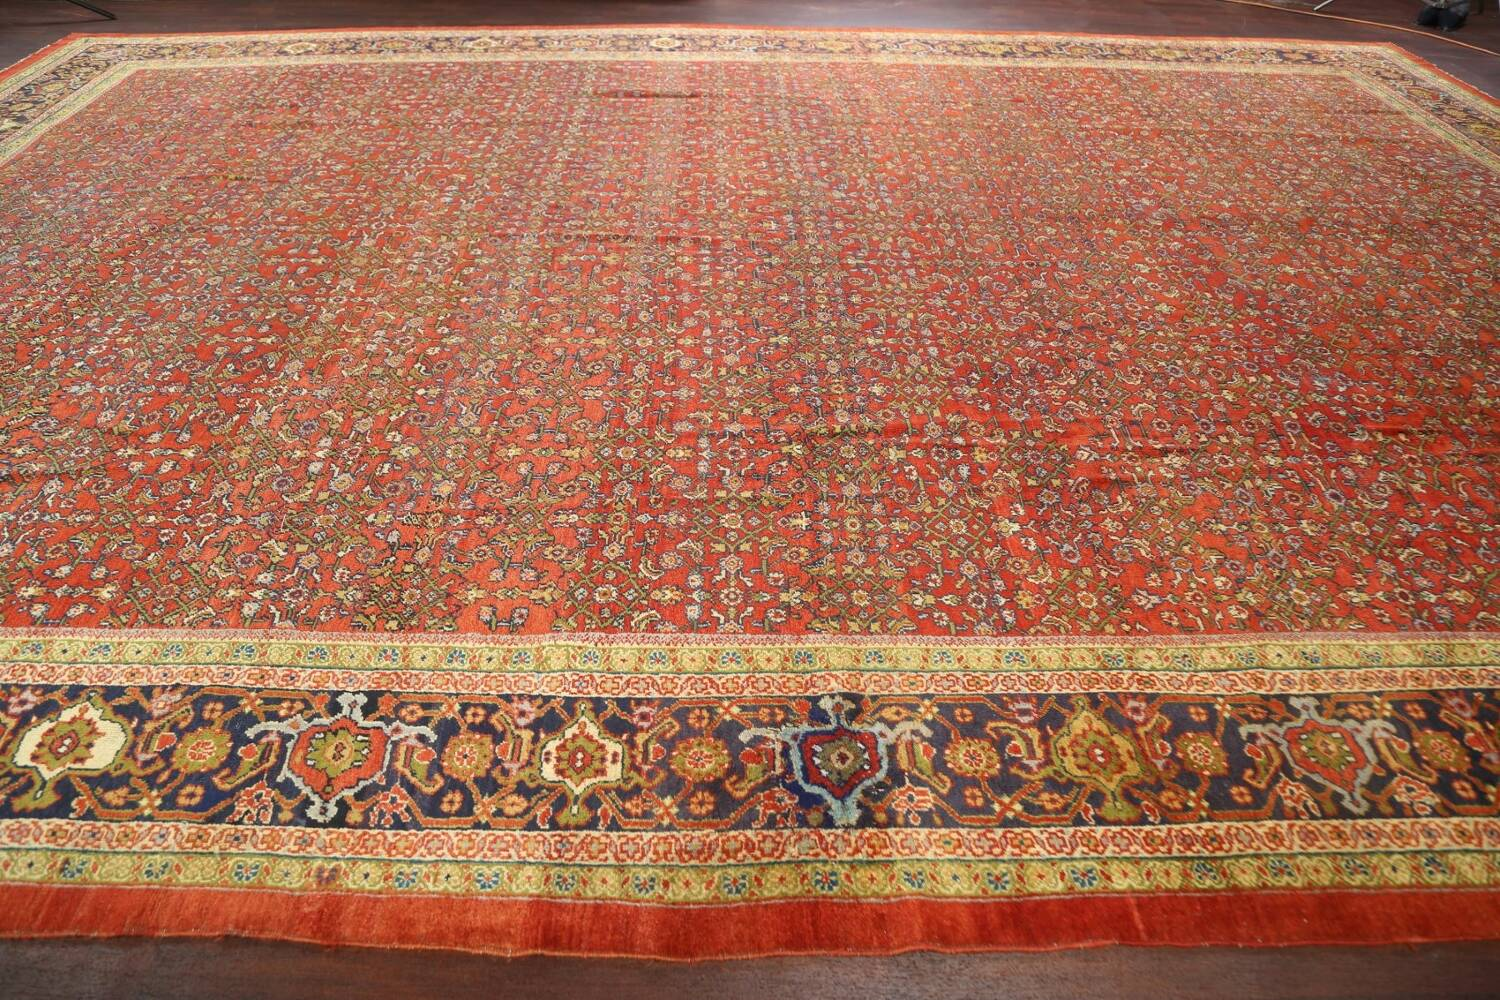 Pre-1900 Antique Vegetable Dye Sultanabad Persian Rug 15x22 image 14